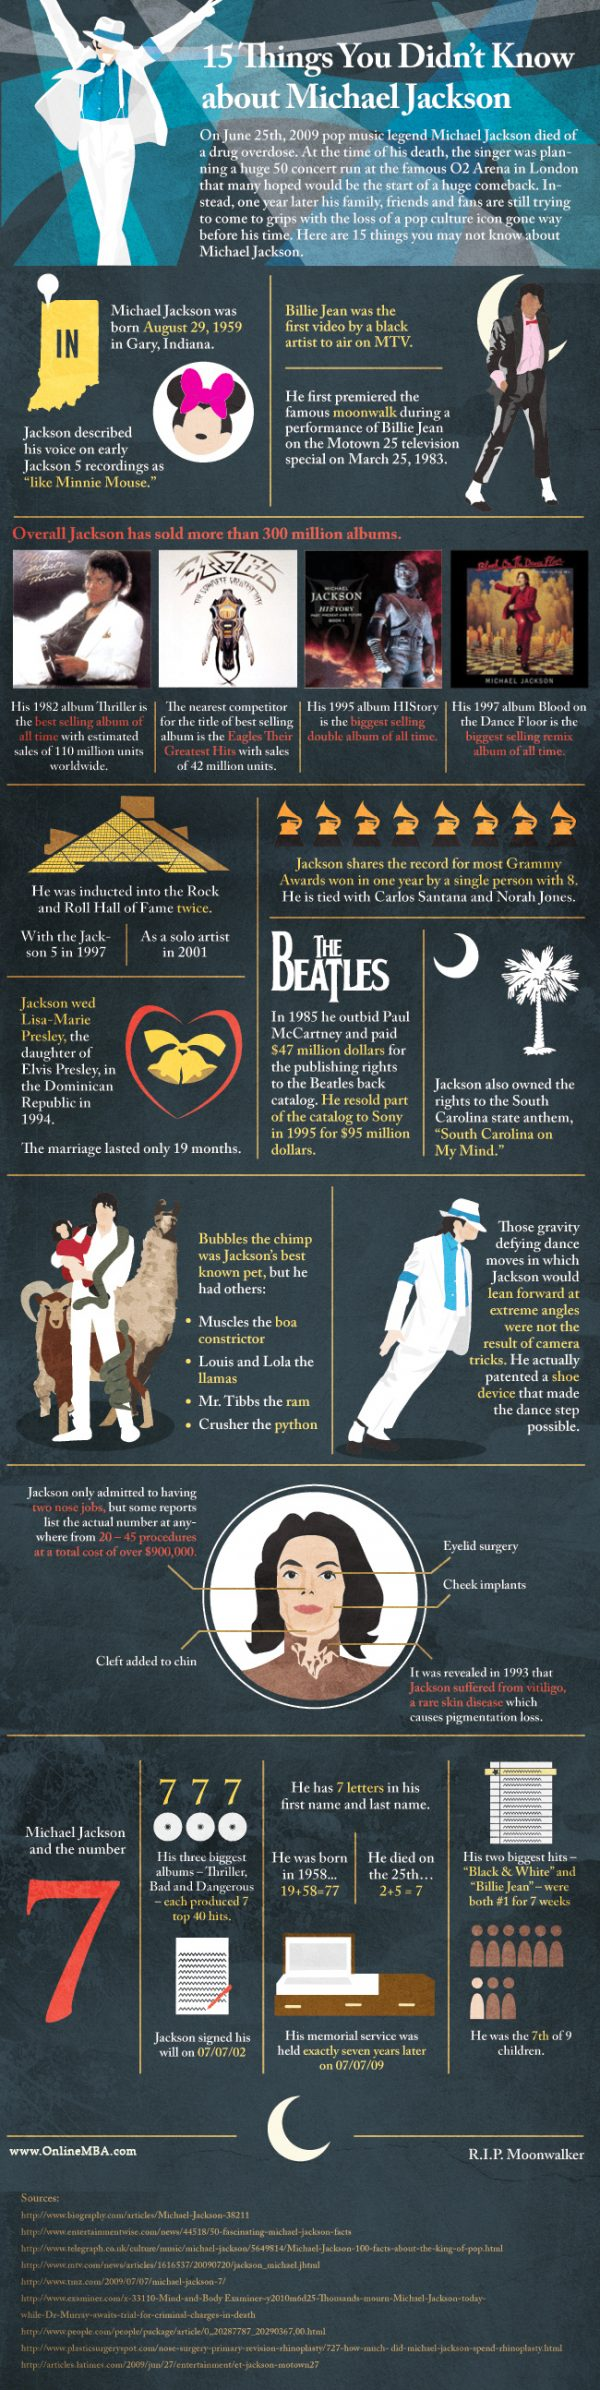 15 Things You Didn't Know about Michael Jackson (Infographic)